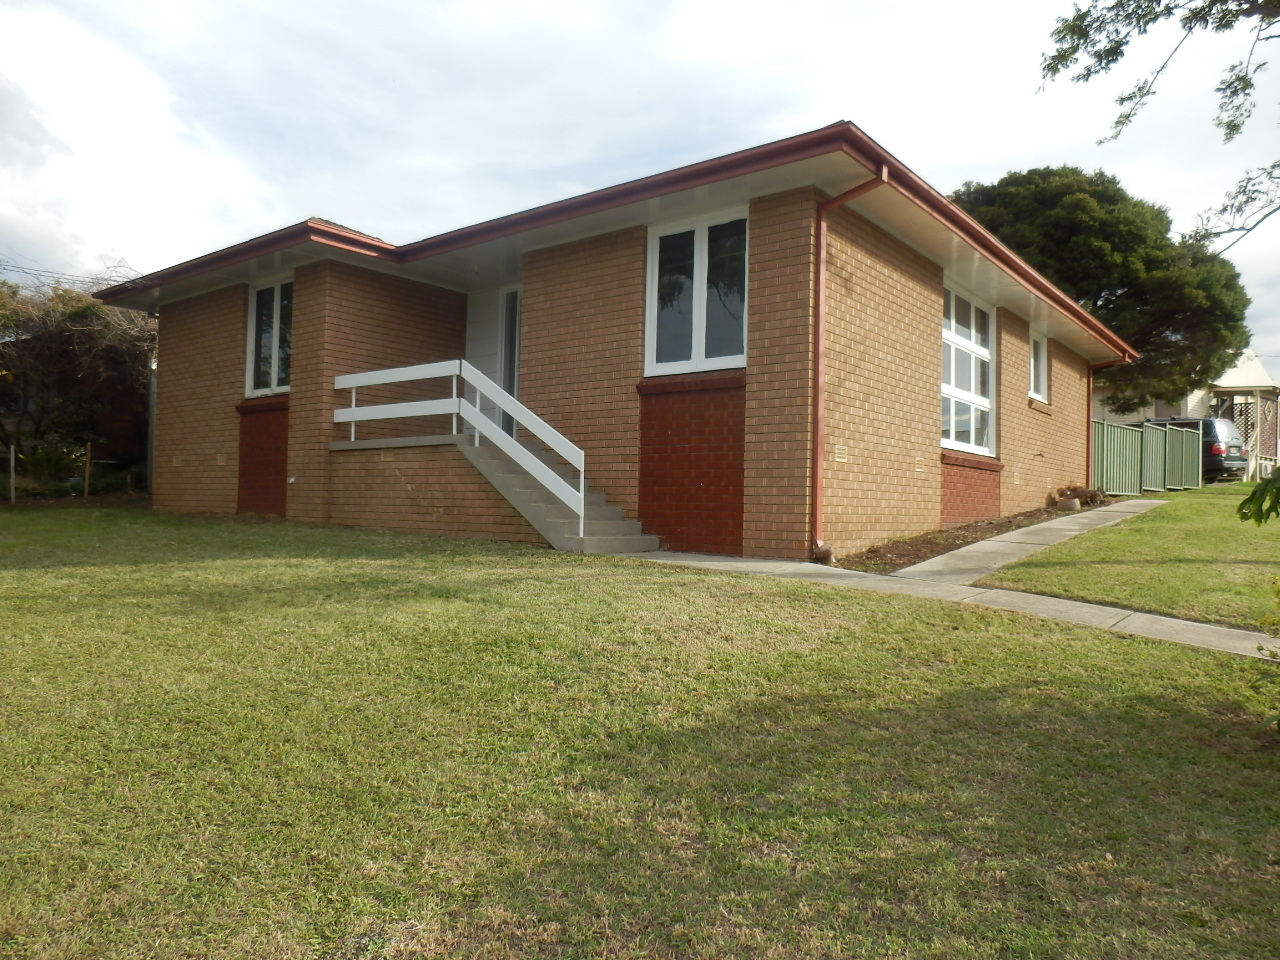 Renovated 3 Bedroom Home in Great Location